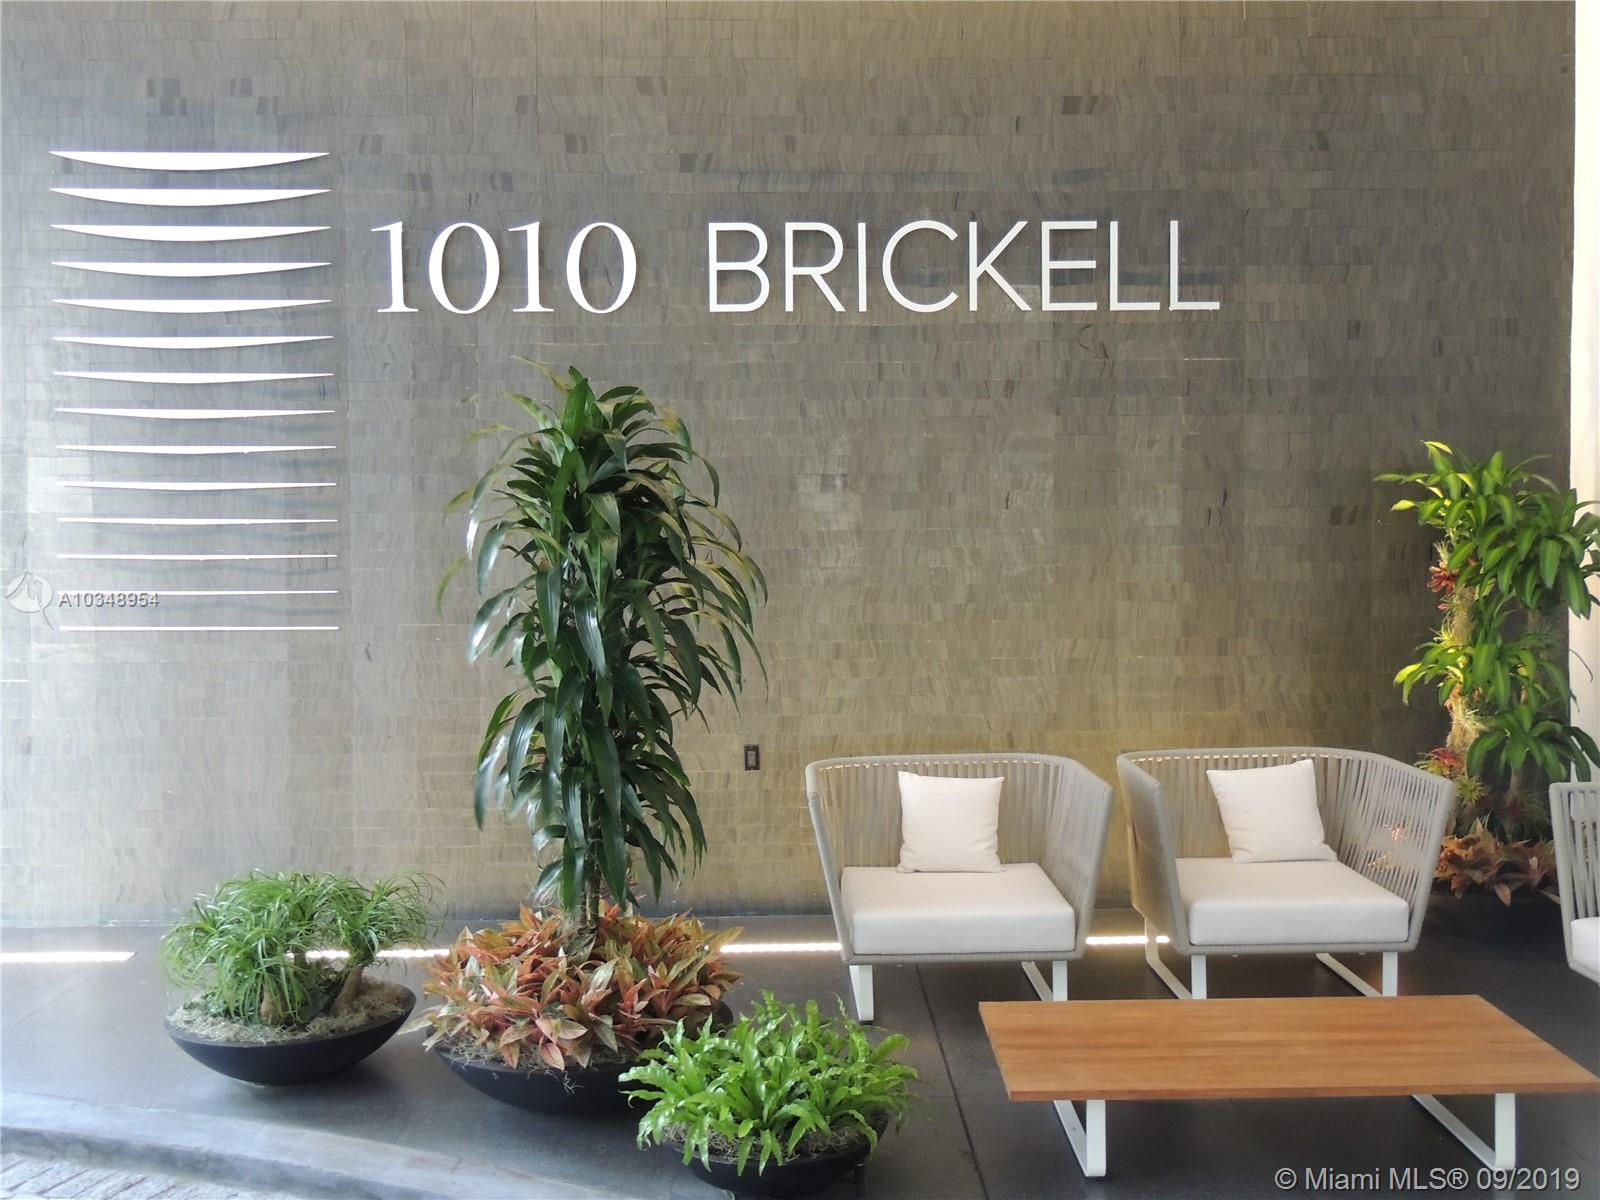 **Investors only Please**Luxury 1/1½  plus Den*Corner Unit*w/newly installed flooring*Rented at $2650/Mon thru May 31, 2021*1010 Brickell is centrally located in the heart of Miami's Brickell Avenue, within one block of Mary Brickell Village & Brickell City Centre.  Featuring The Club at 1010, an exclusive two-story amenity area w/dozens of activities for all ages & interests.  Amenities include a rooftop pool*lounge w/outdoor theater*meeting rooms*conference space*indoor heated swimming pool*a spa featuring a hammam Turkish steam bath are*an impact-absorbing outdoor running track providing unparalleled views of the Miami skyline*indoor game room*indoor/outdoor playground areas including a mini water park*an elegant social room*a fitness center*courts for a variety of sports & so much more